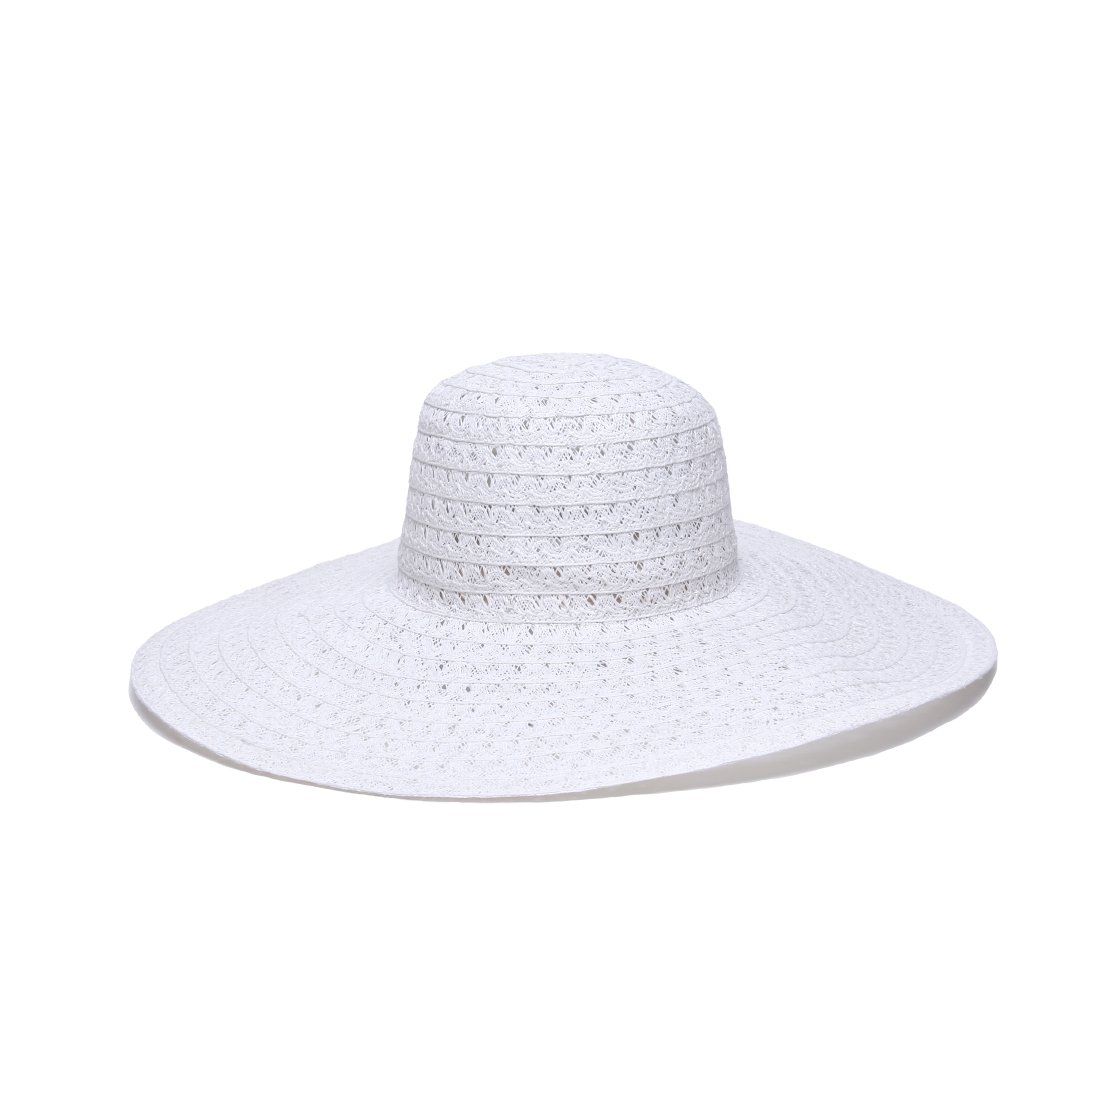 'ale by alessandra Women's Chantilly Lace Weave Toyo Floppy Hat, White, One Size by ale by Alessandra